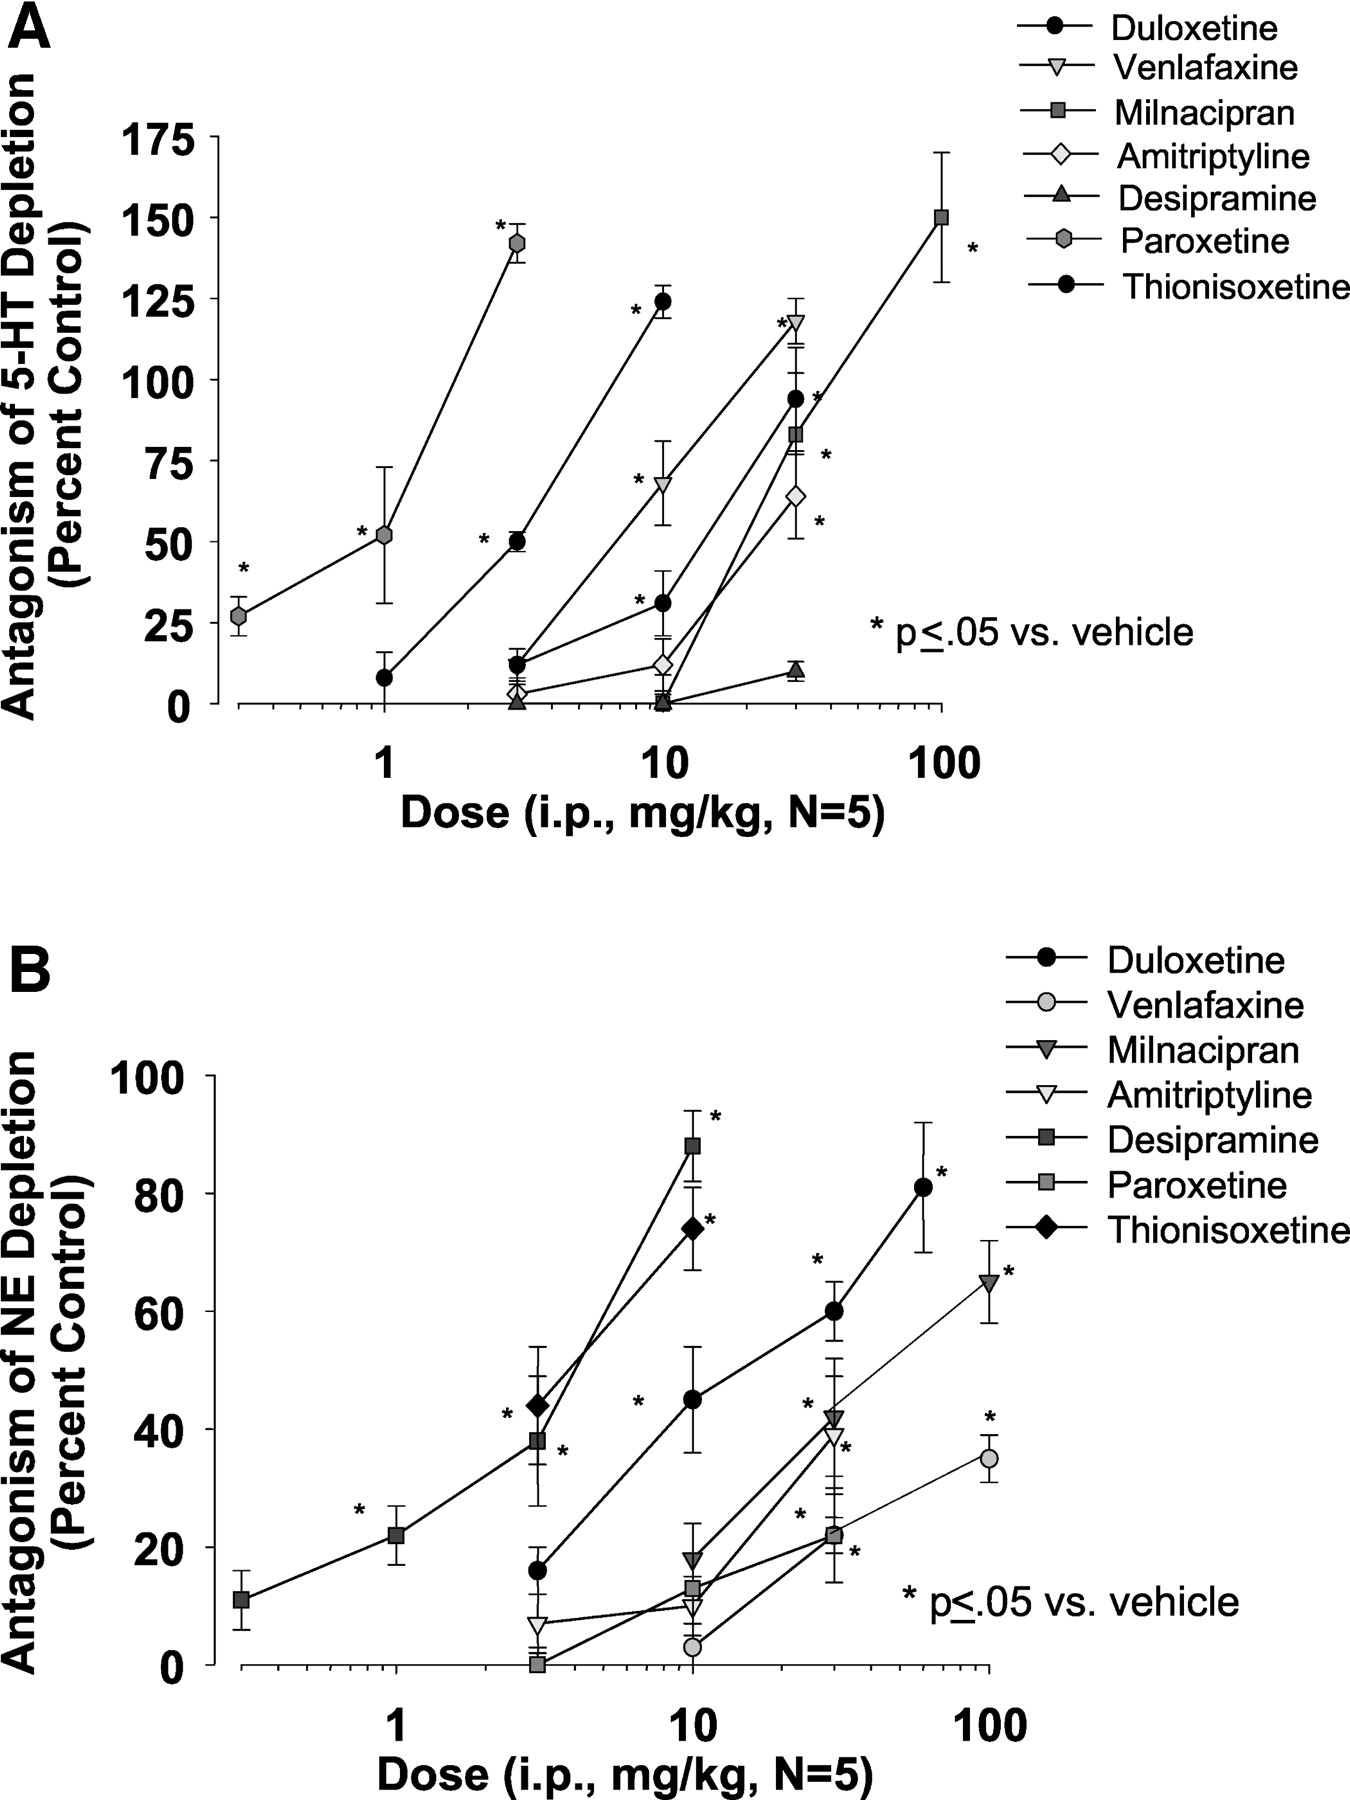 efficacy of duloxetine a potent and balanced serotonin Mg to Grams download figure